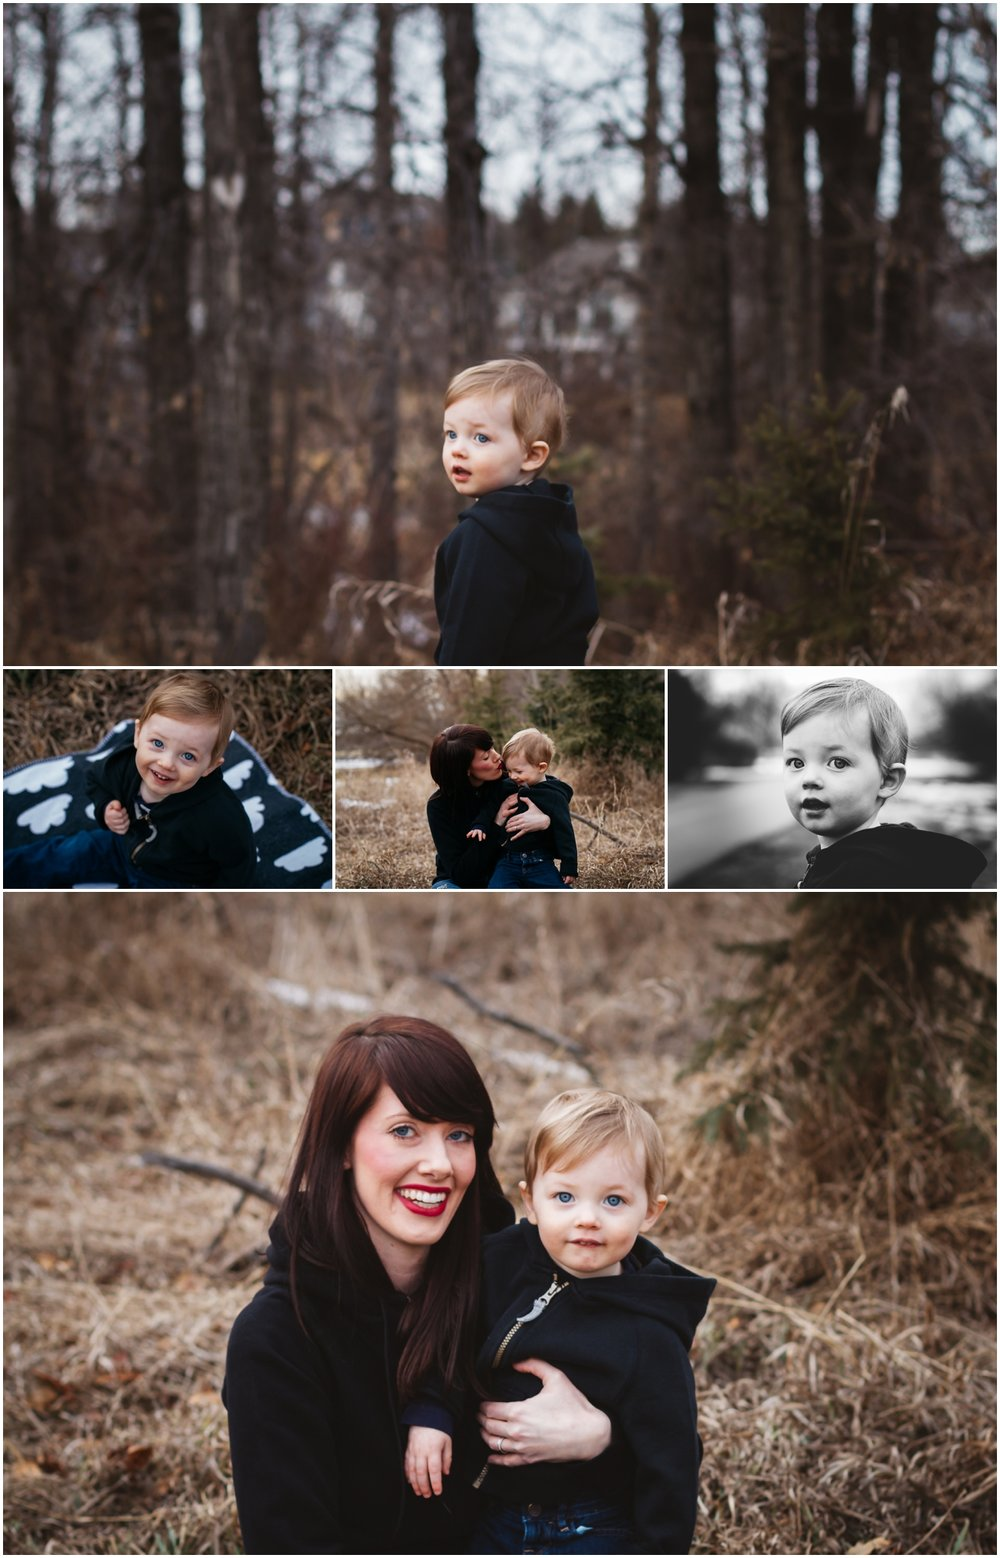 Edmonton family child photographer Best of 2016 March